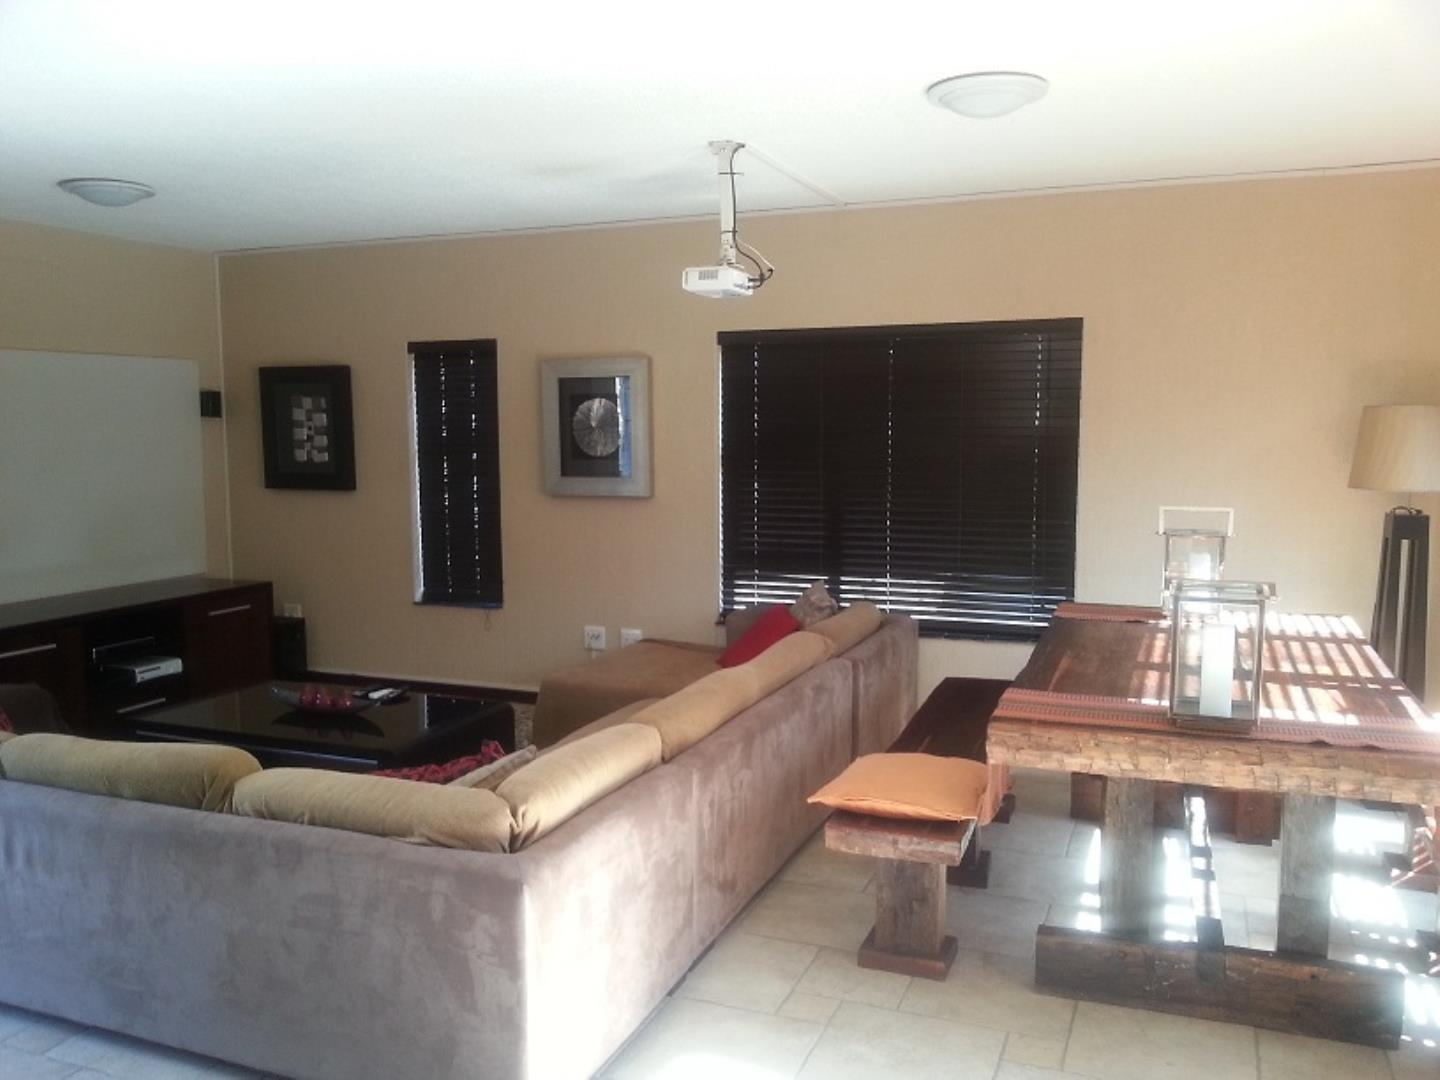 2 Bedroom Townhouse for Sale in Rossmund Golf Estate, Swakopmund - Erongo